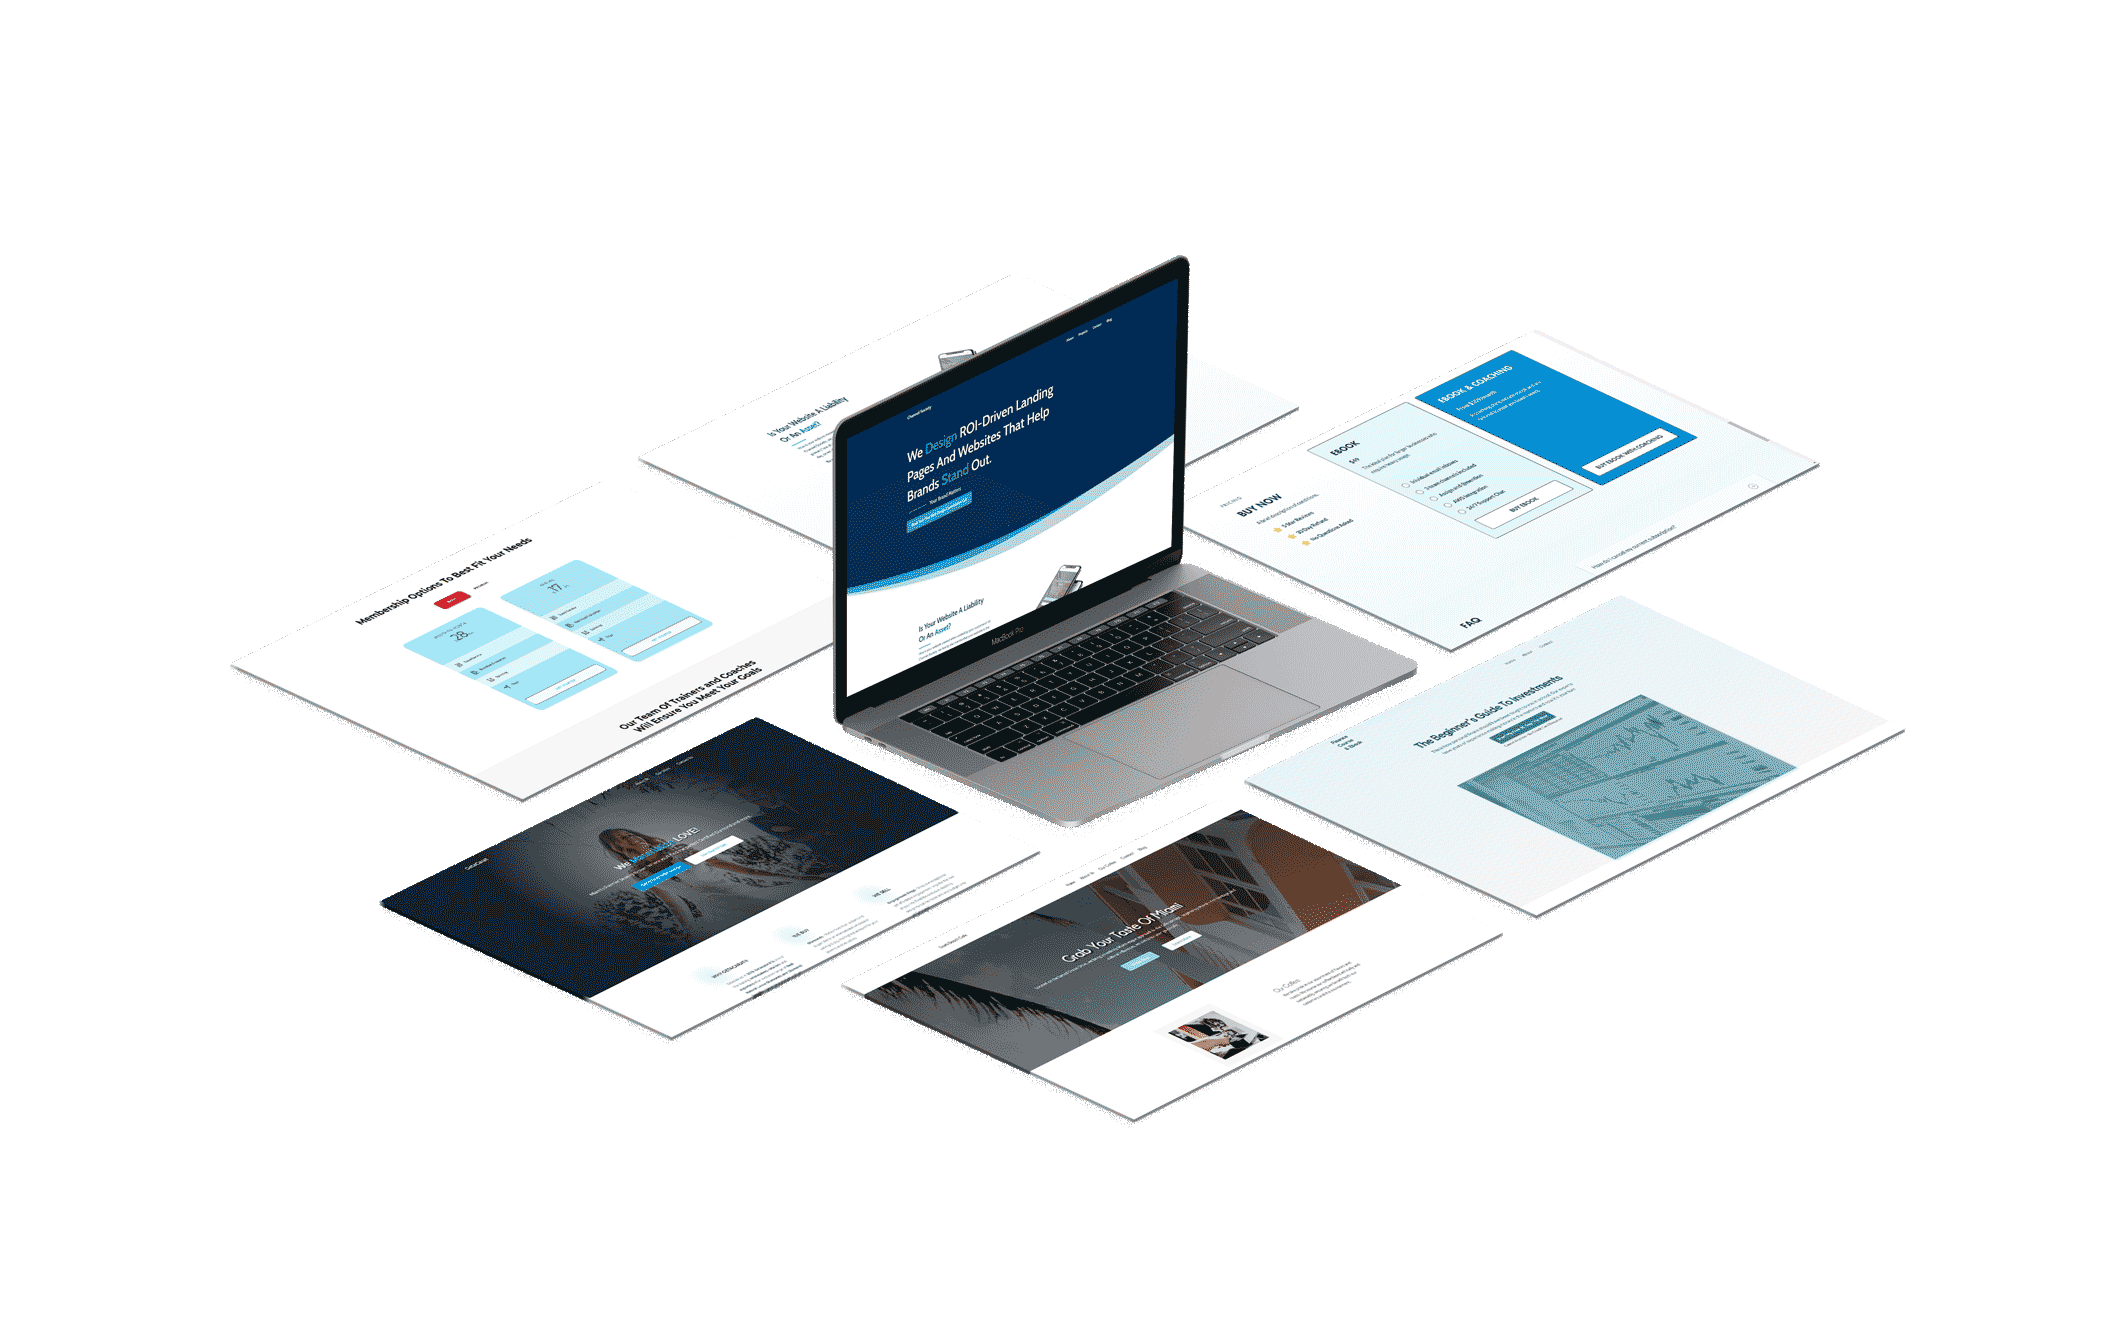 Mock up of seven website interfaces to demonstrate website design ability